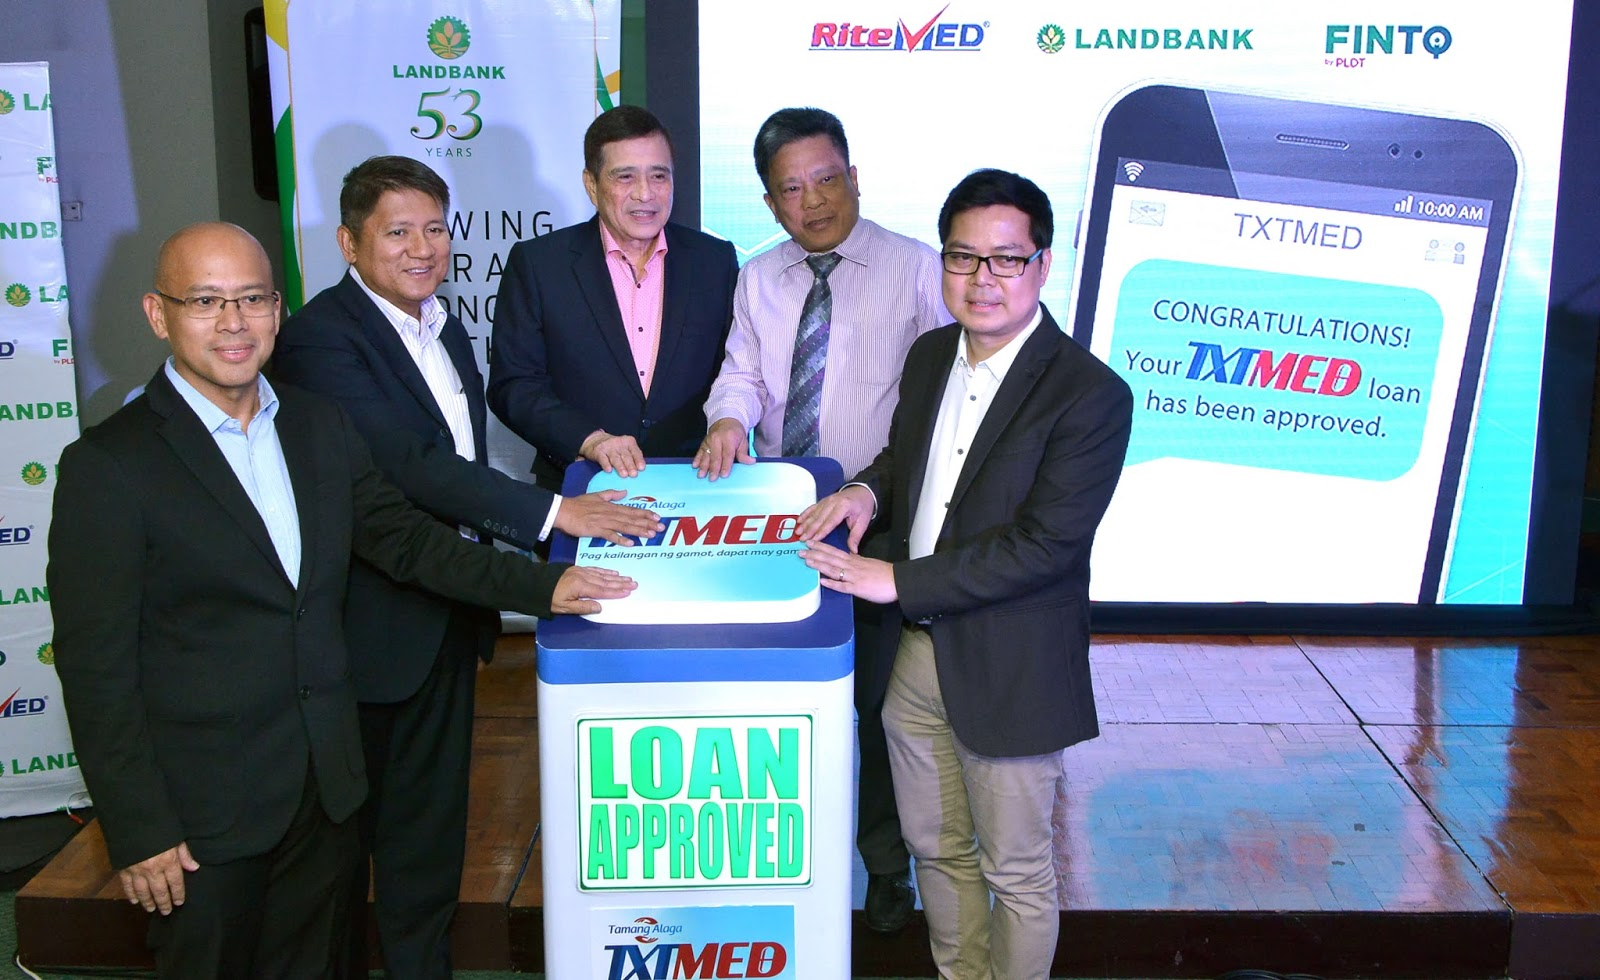 Medicine Loaning Service, TXTMED Launched By RiteMed, LANDBANK, And FINTQ!